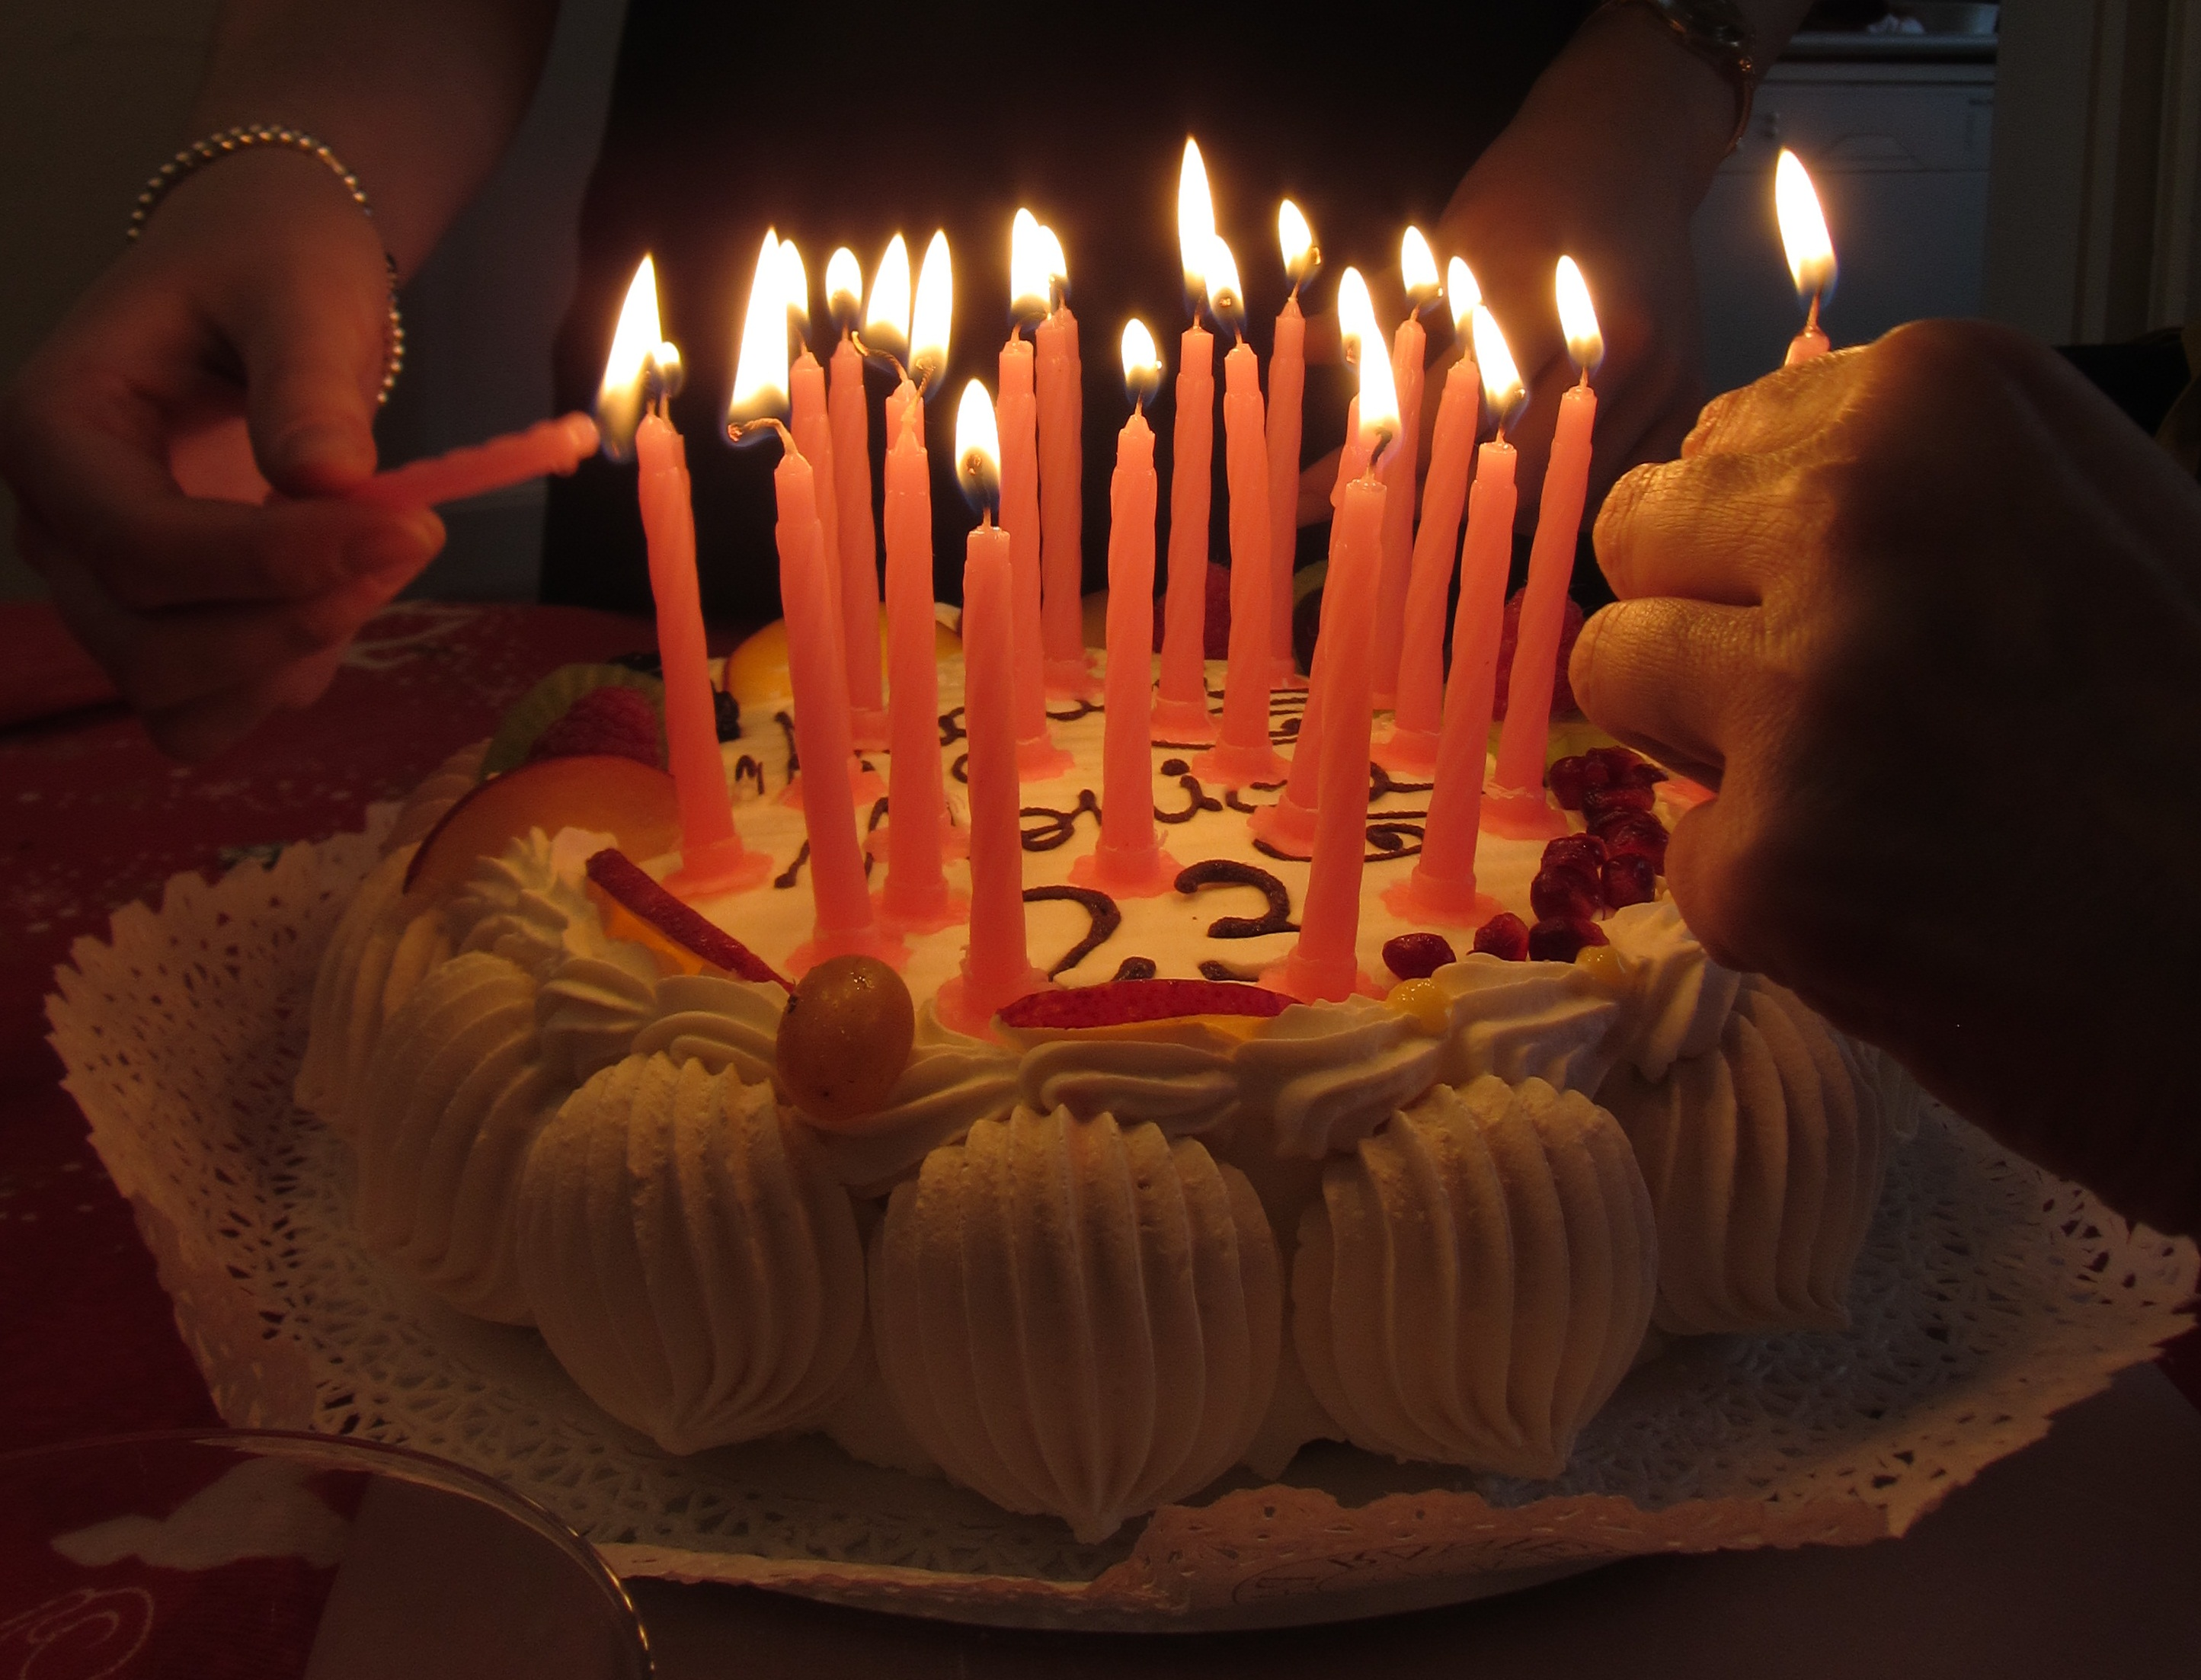 File Italy Birthday Cake With Candles 3 Jpg Wikimedia